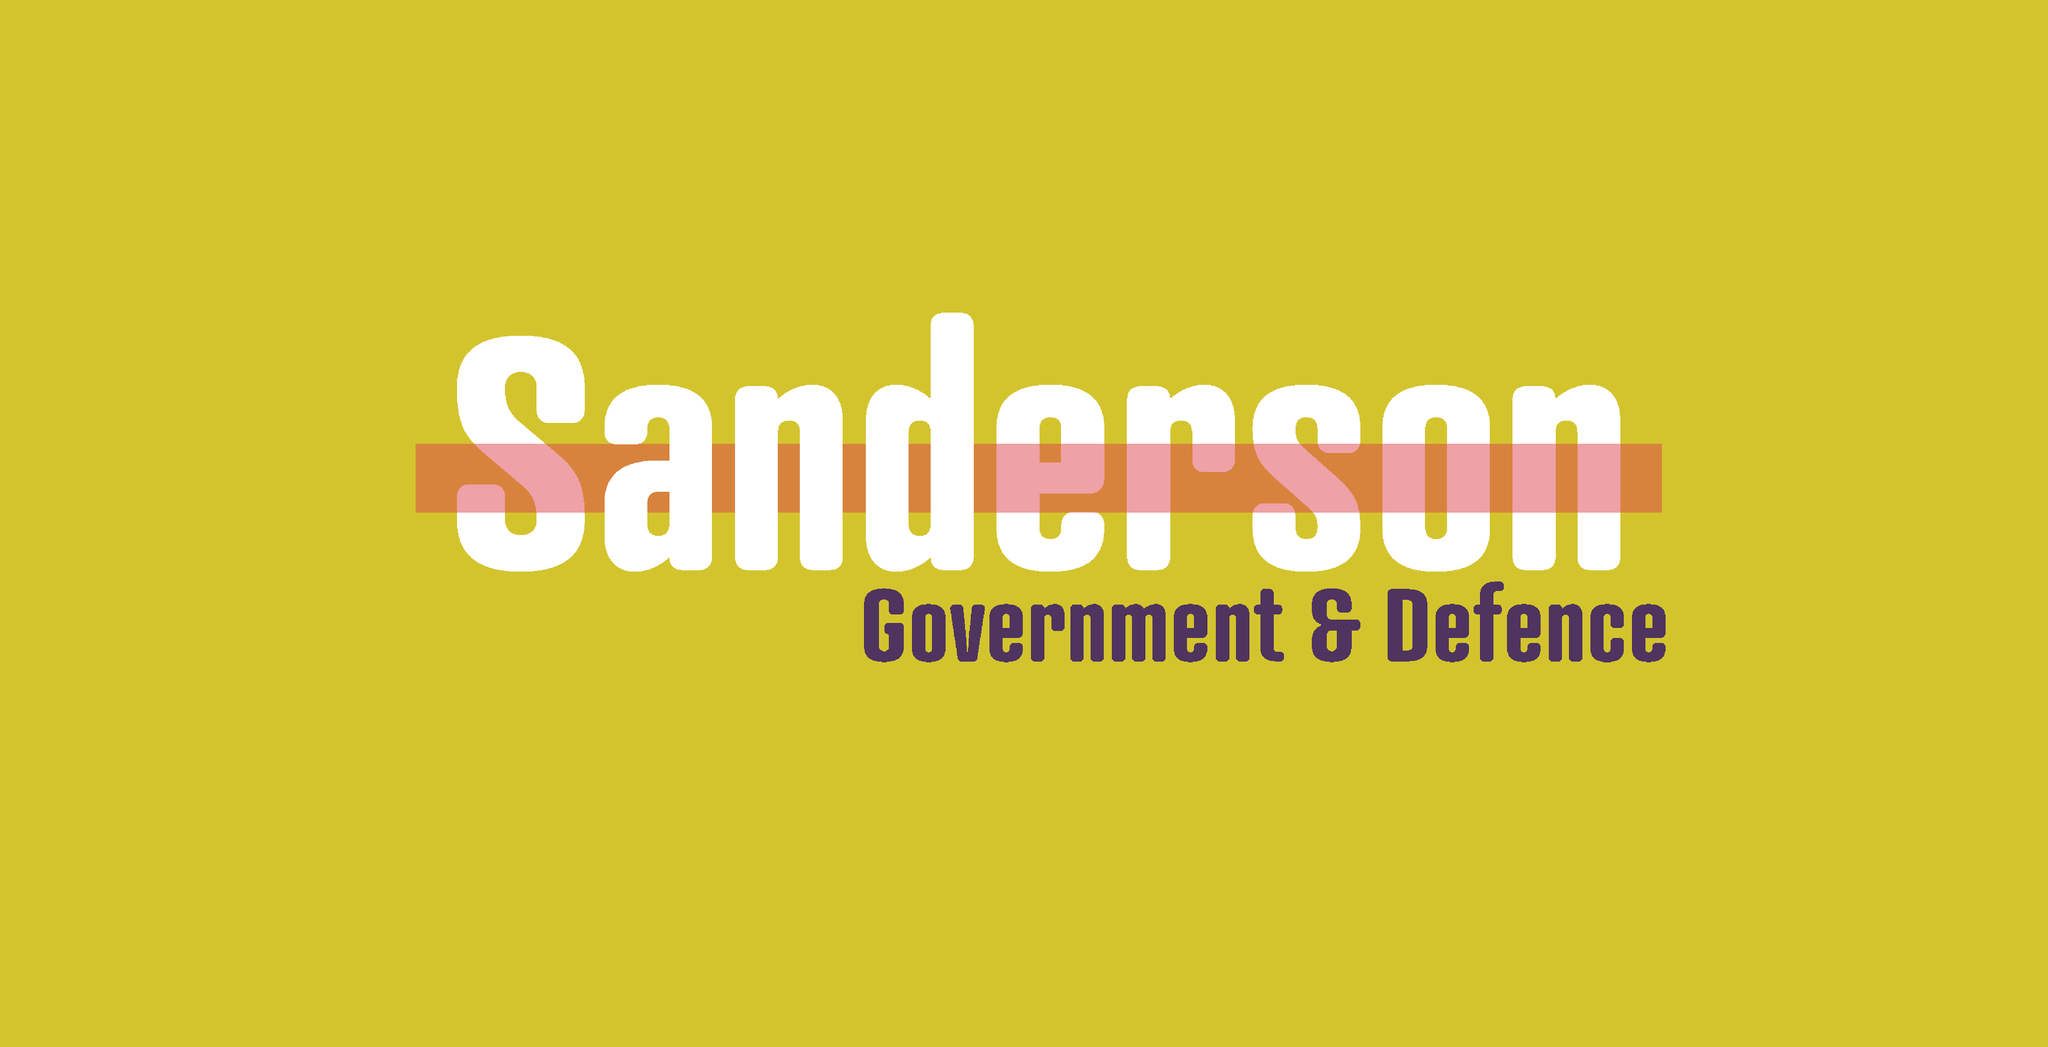 Sanderson Government and Defence